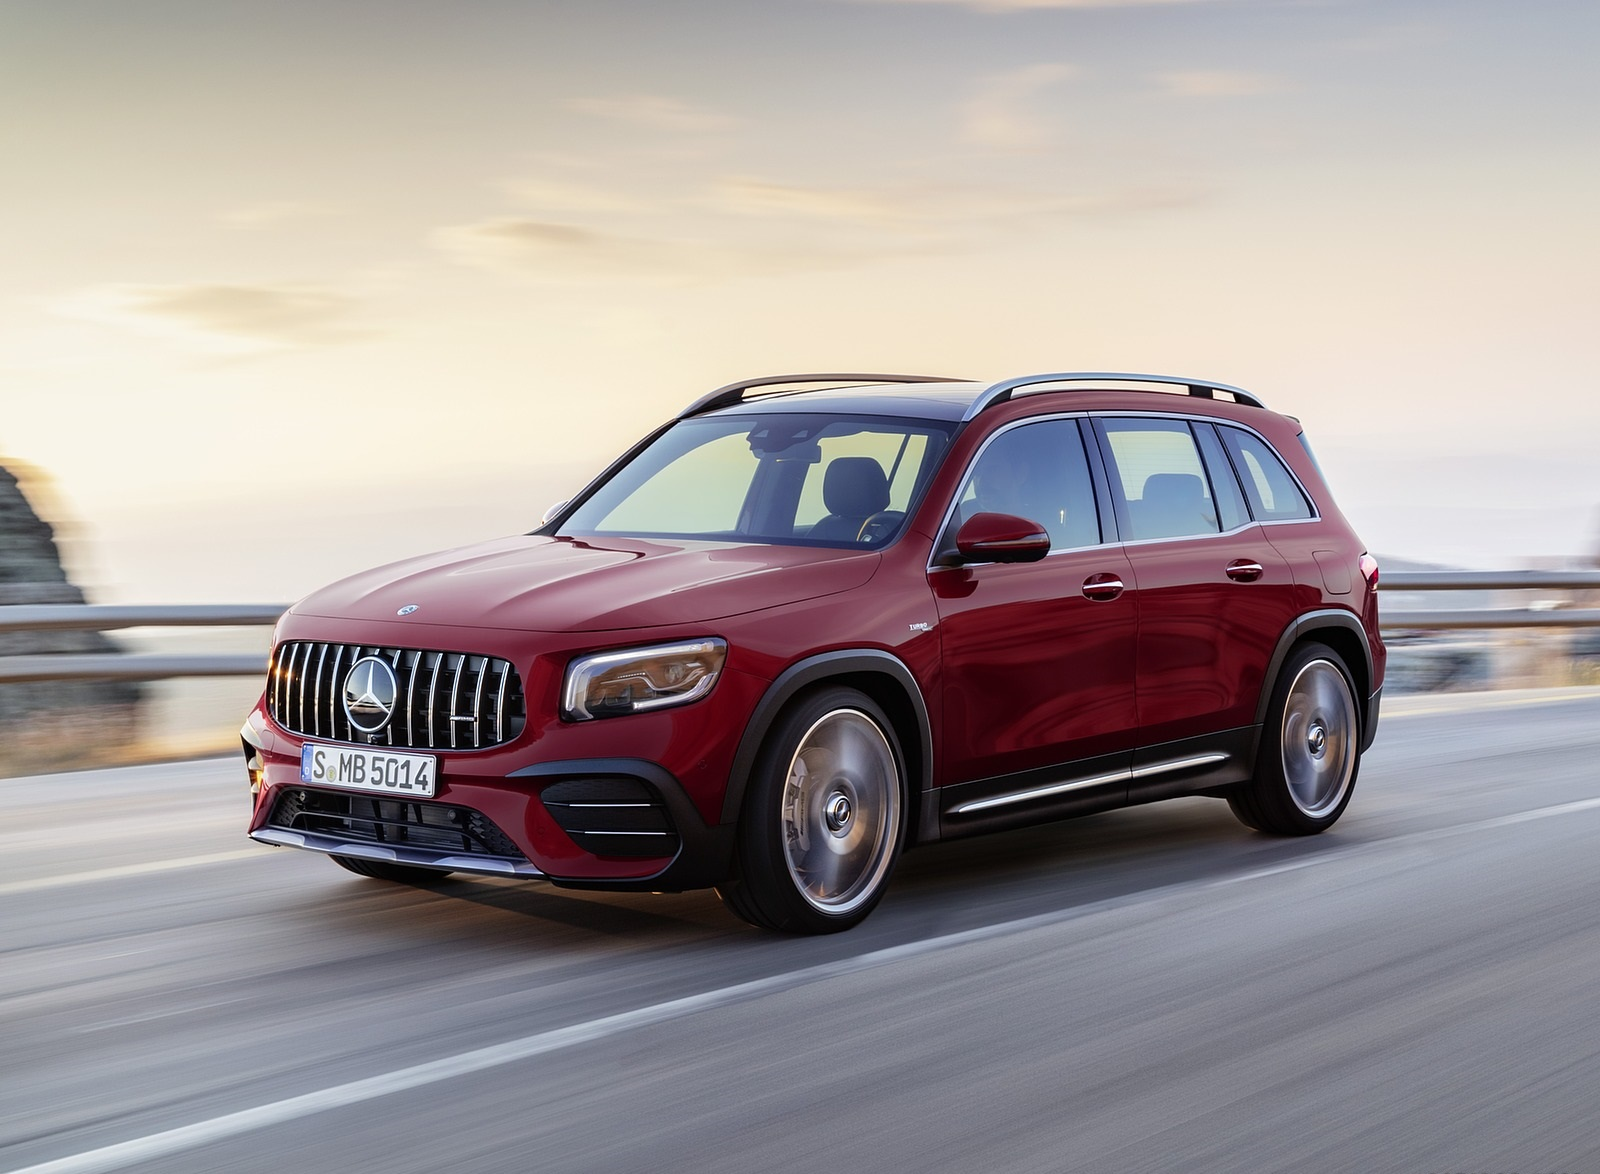 2021 Mercedes-AMG GLB 35 4MATIC (Color: Designo Patagonia Red Metallic) Front Three-Quarter Wallpapers (6)